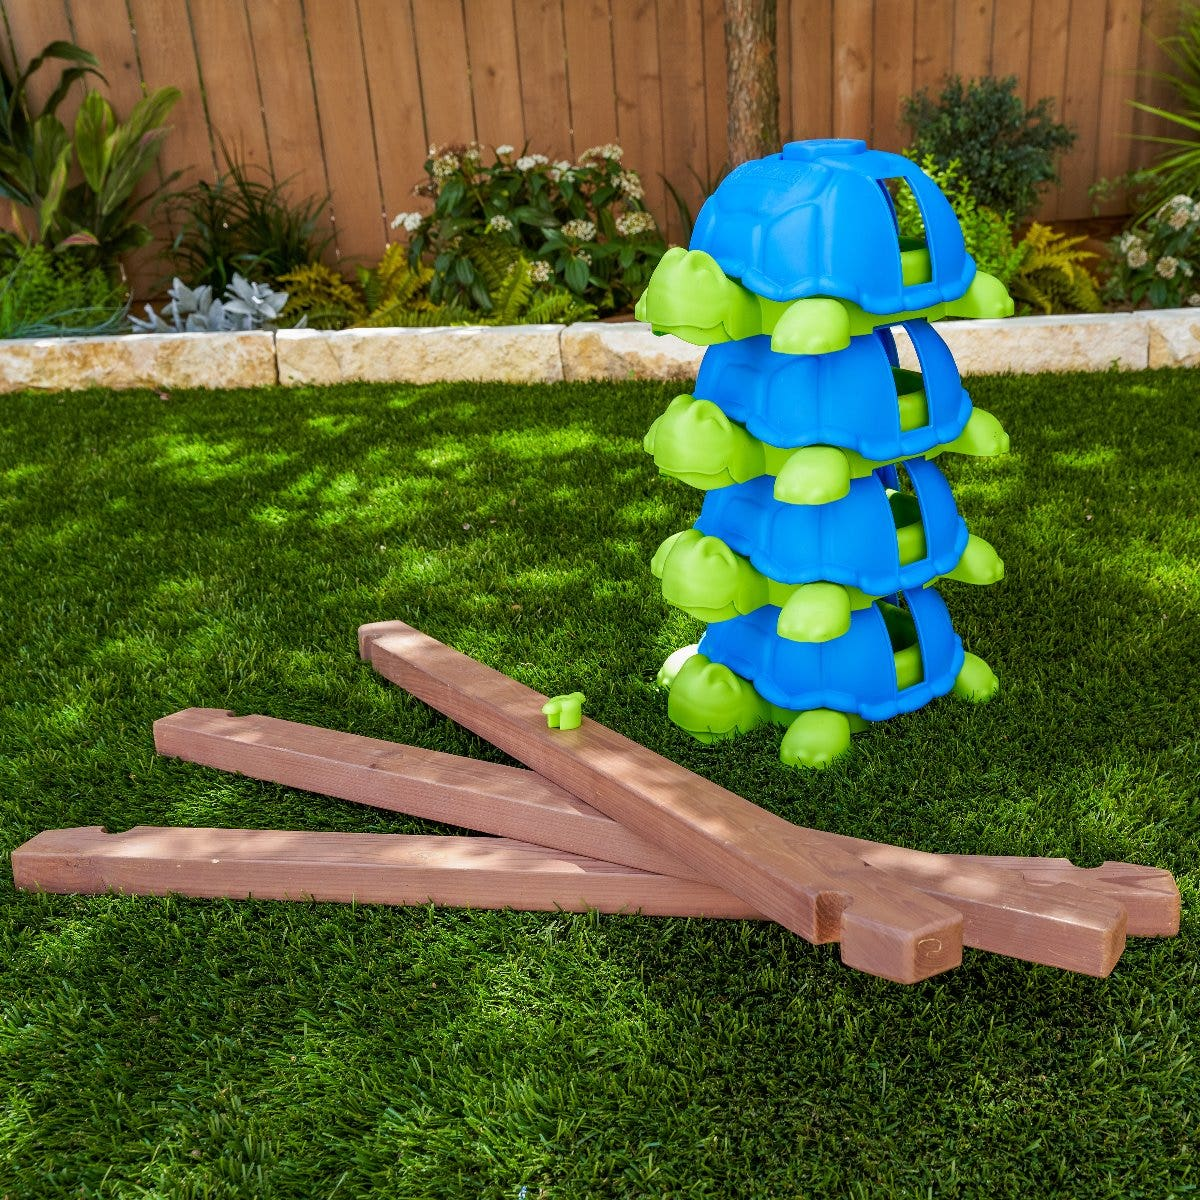 Four plastic turtle balance stations (one with squeaky noise)